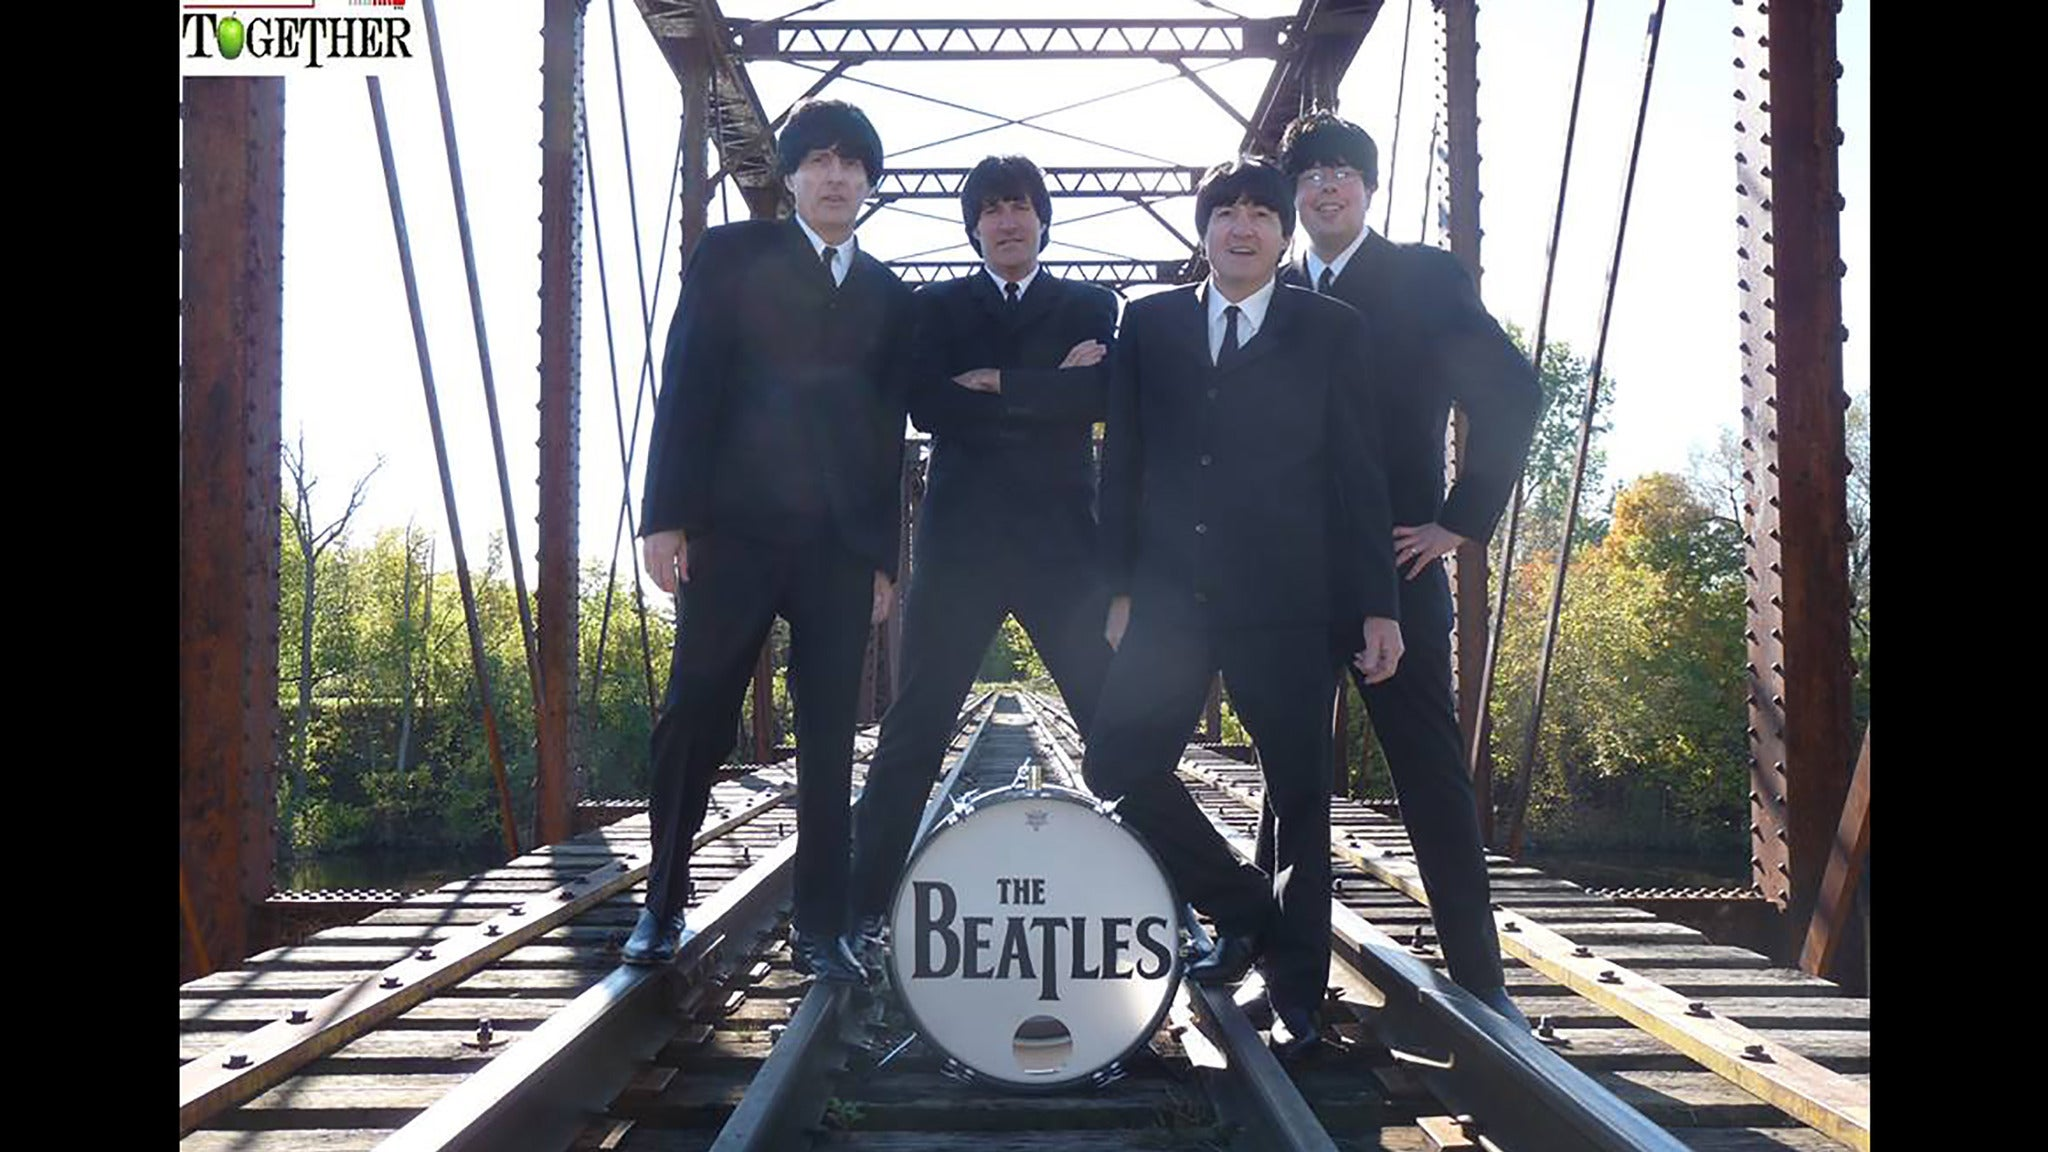 Come Together: The Beatles Concert Experience